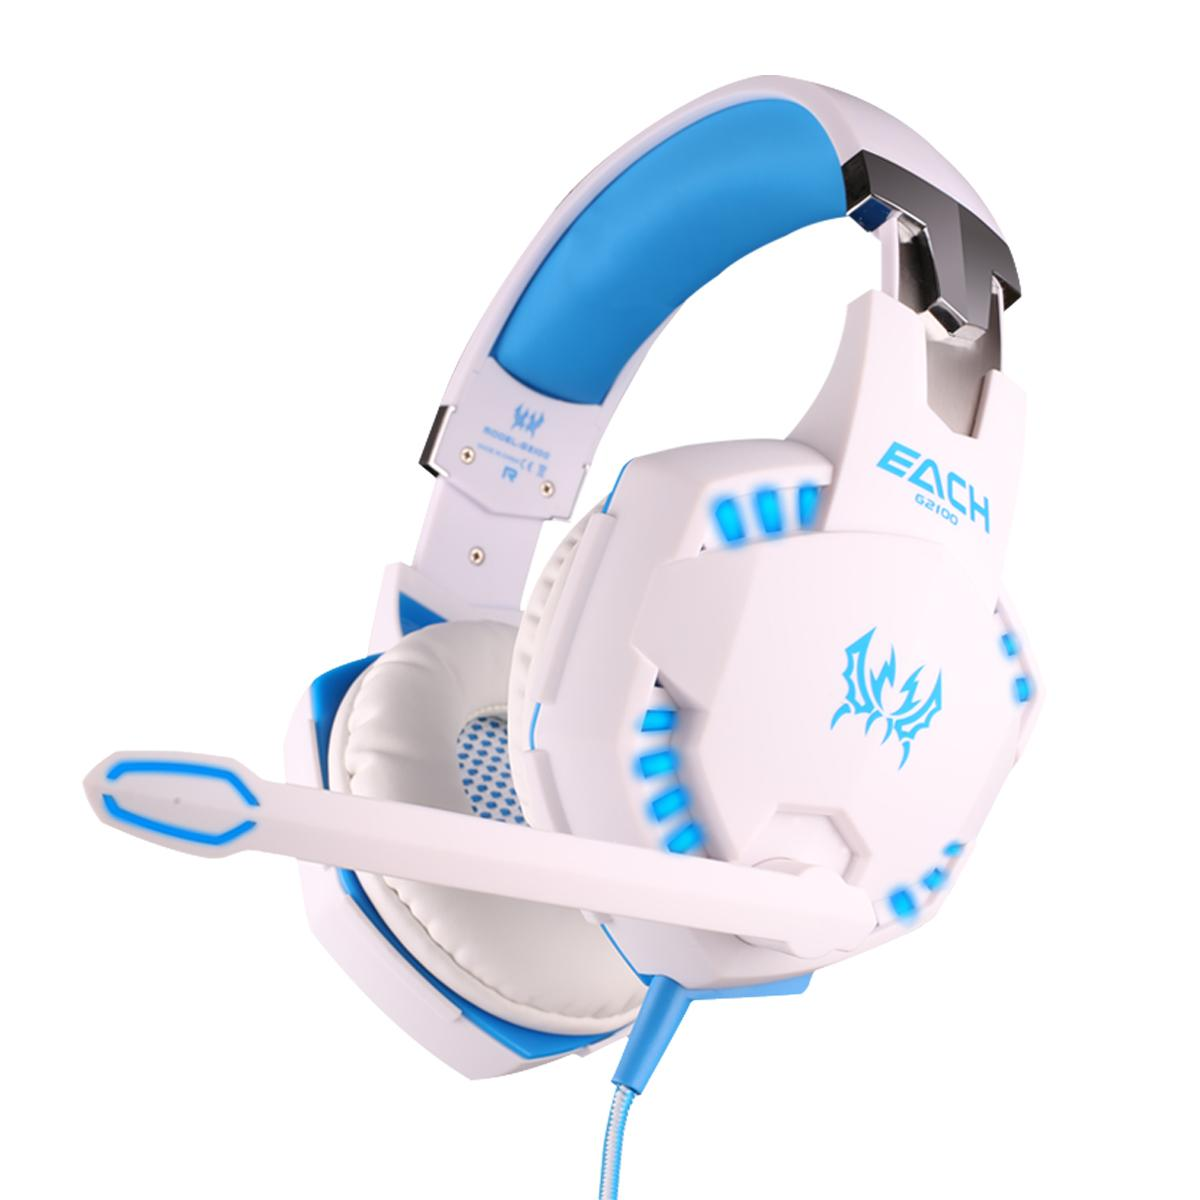 G2200 Hot Sale Factory Direct Price Earphone Led Gaming Headsets with  Vibration 3d Sound Effect China Supplier